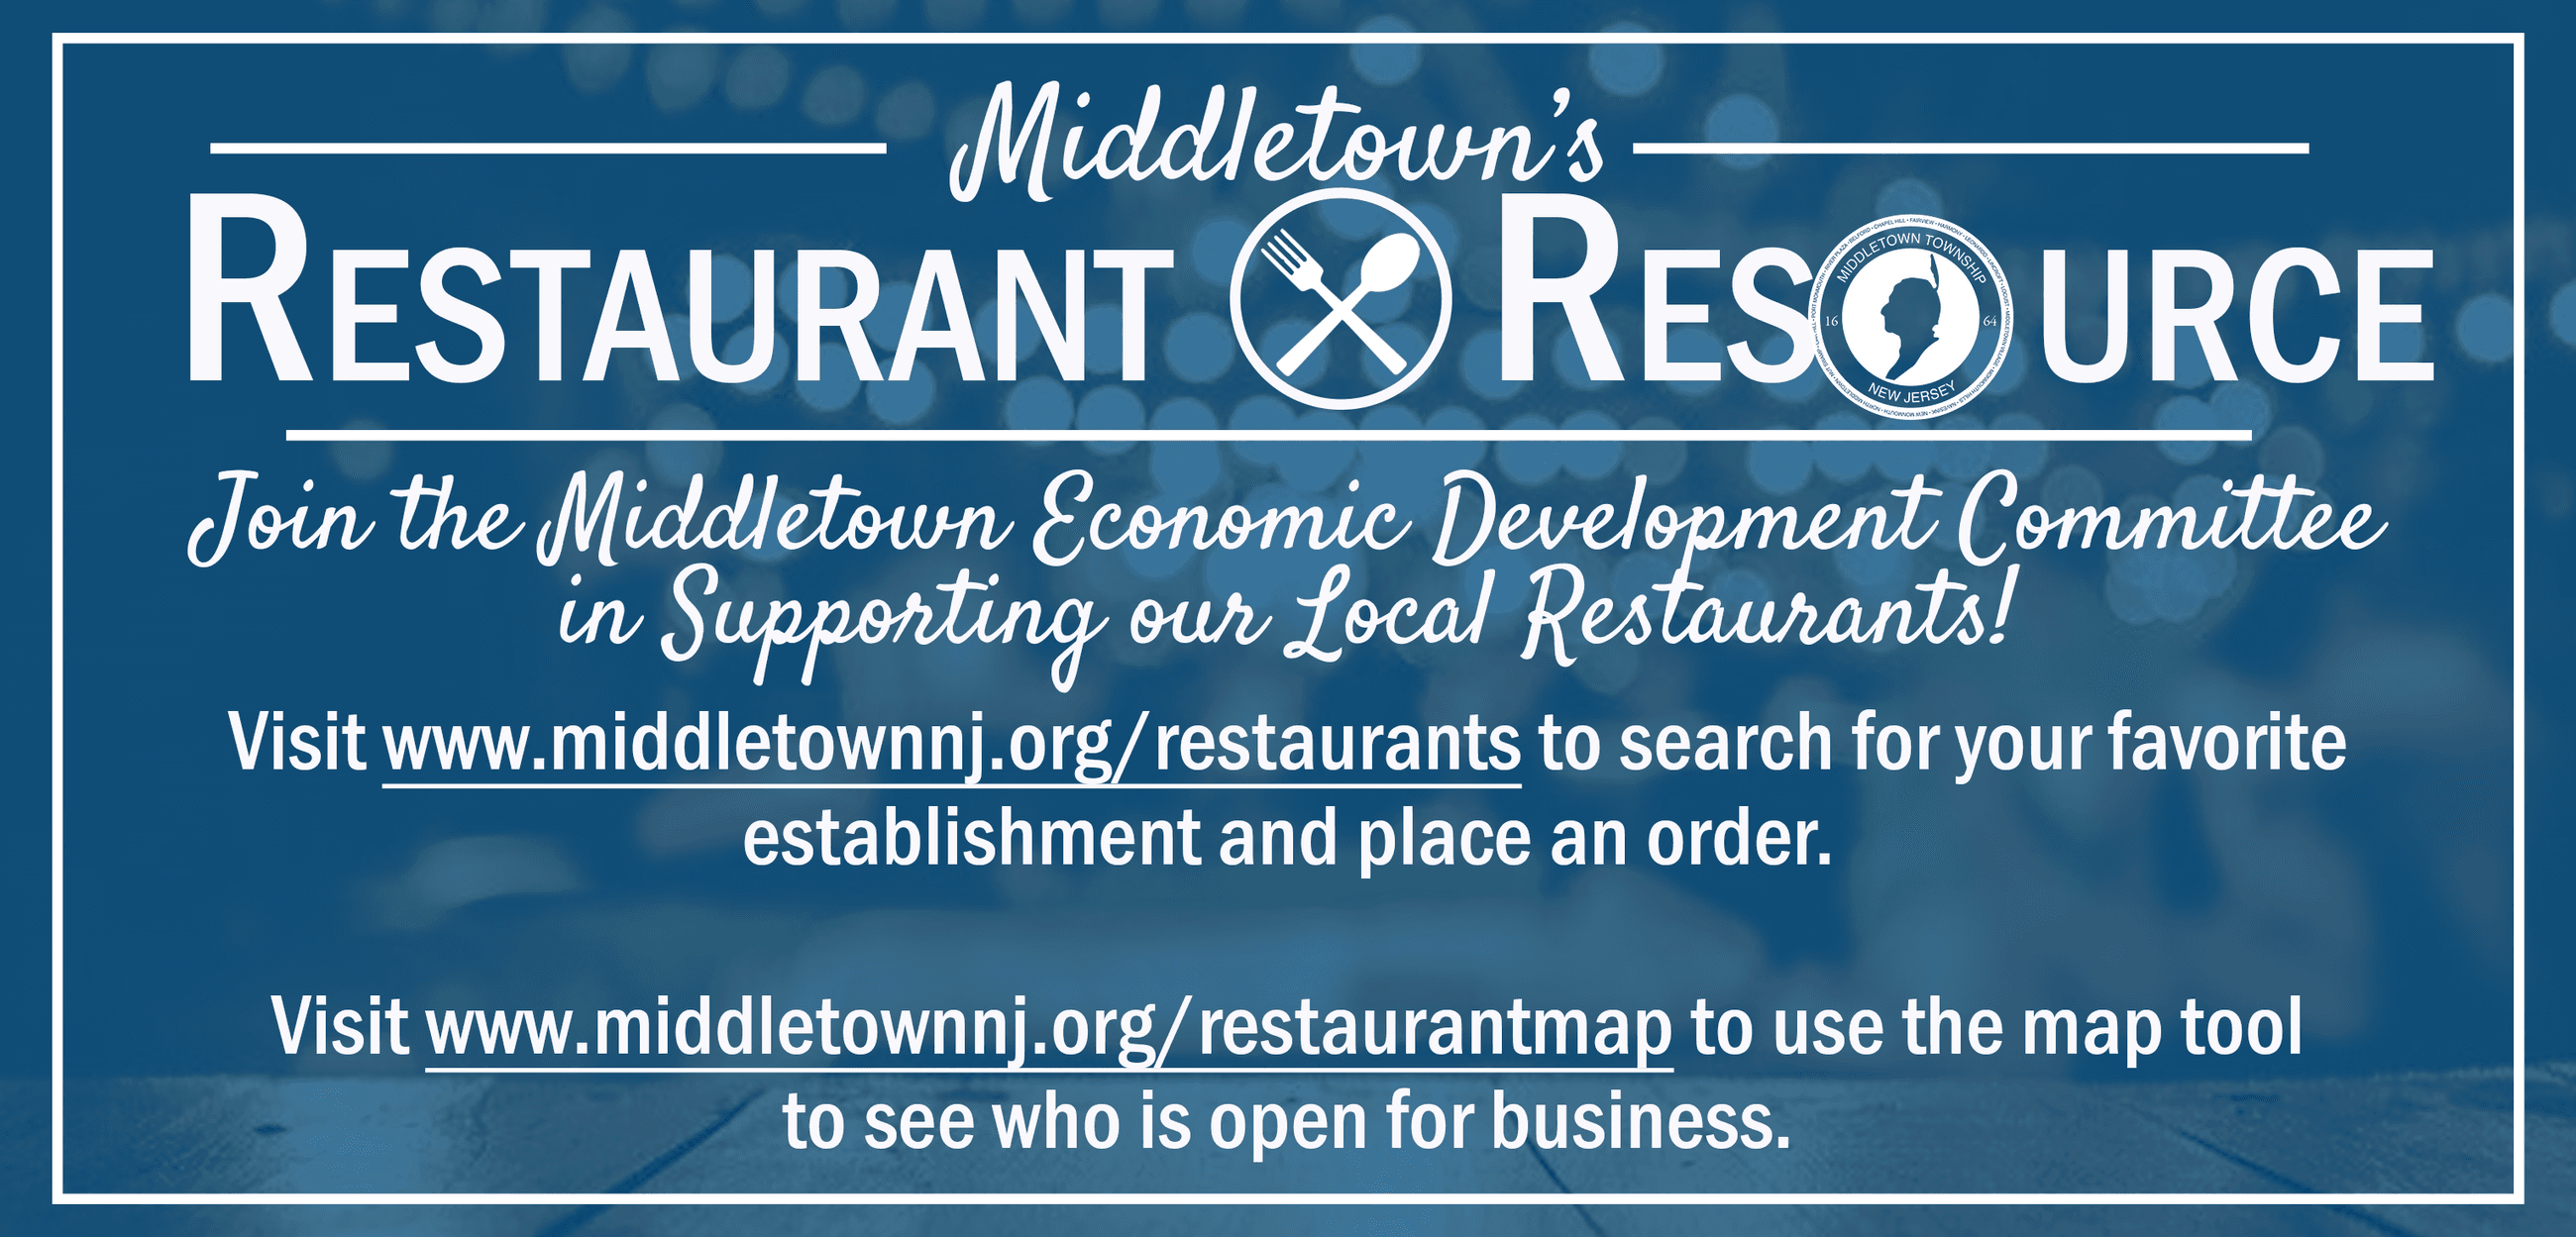 Middletowns Restaurant Resource